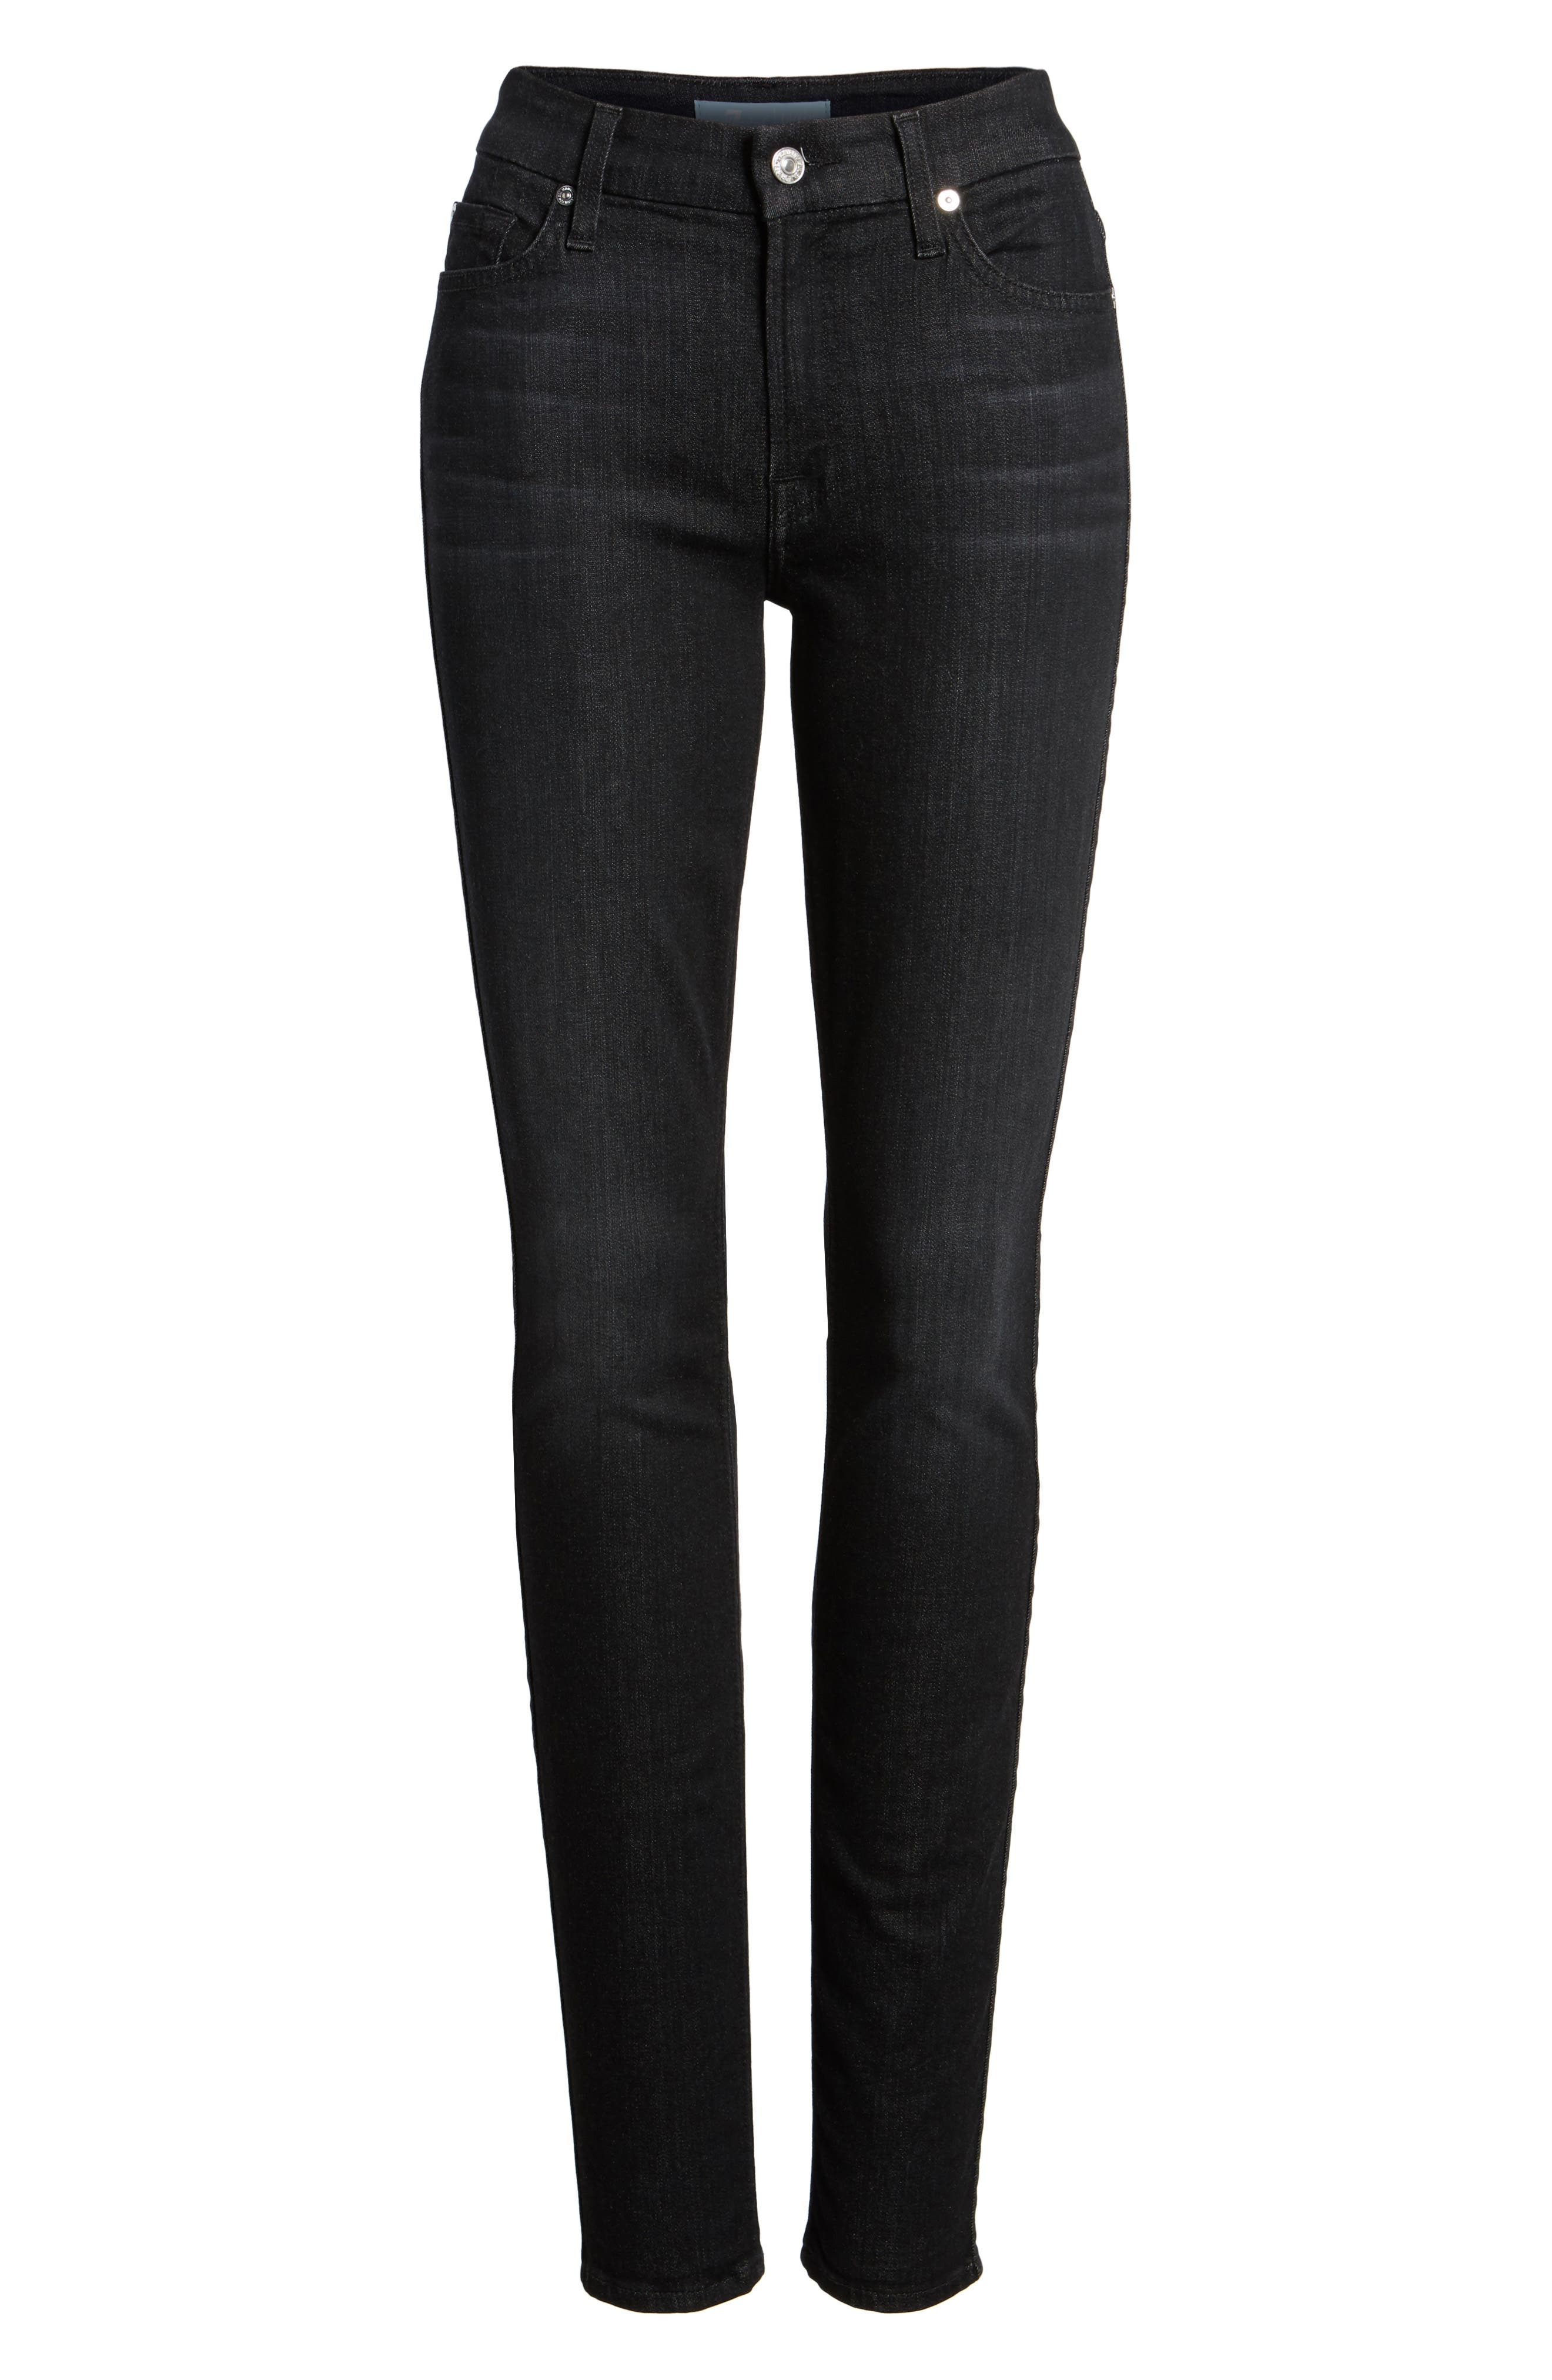 b(air) The Skinny Jeans,                             Alternate thumbnail 6, color,                             005